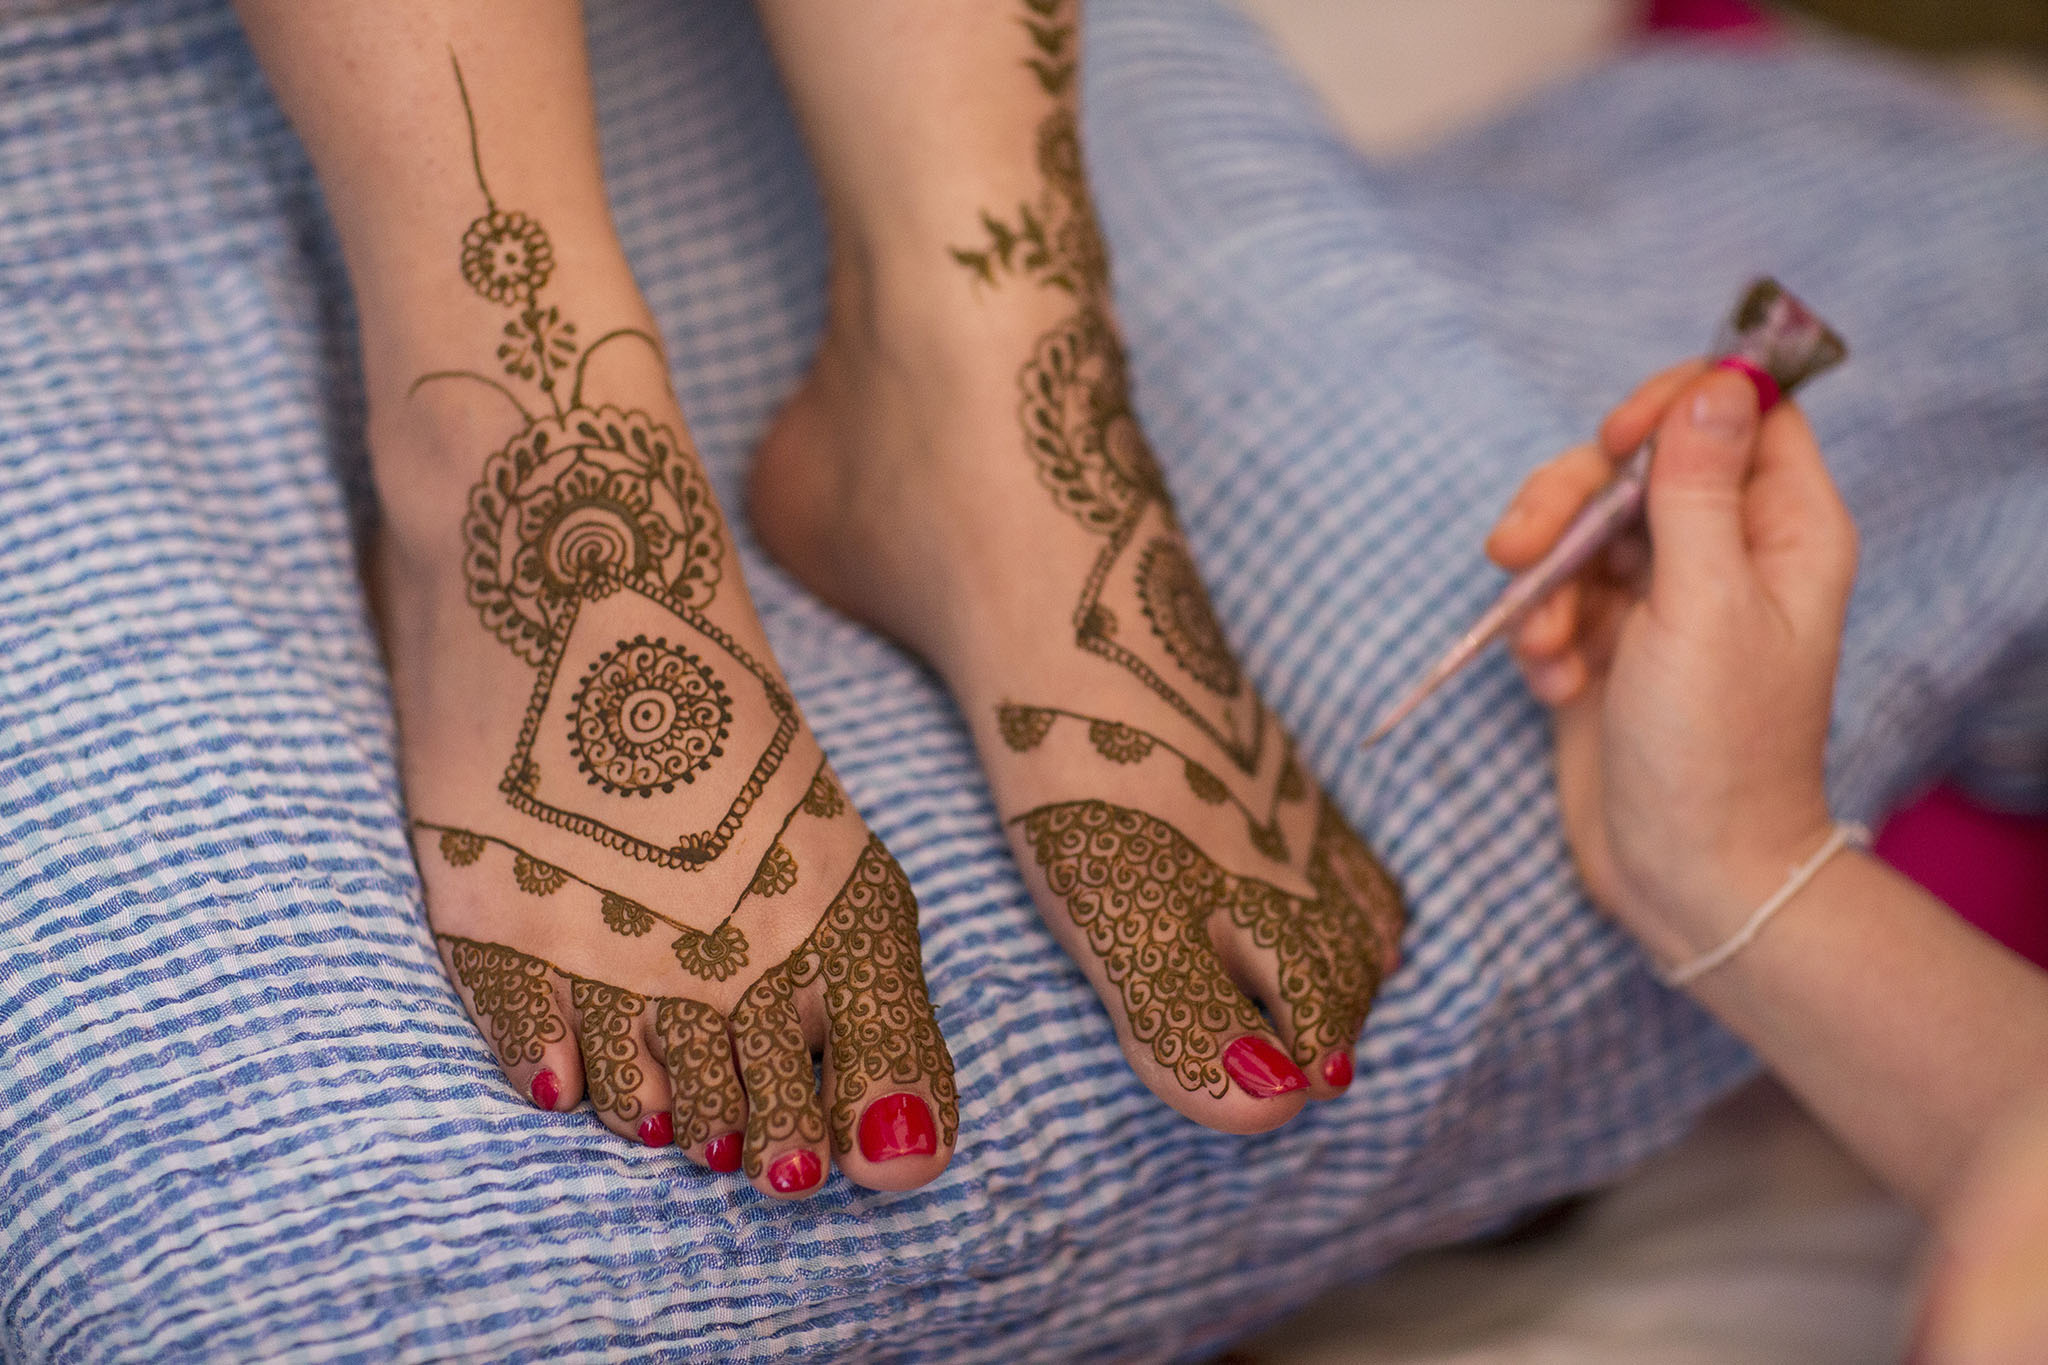 elizabethgphotography_kingslangley_hertfordshire_fineart_indian_wedding_mehndi_photography_jigna_bhuja_13.jpg